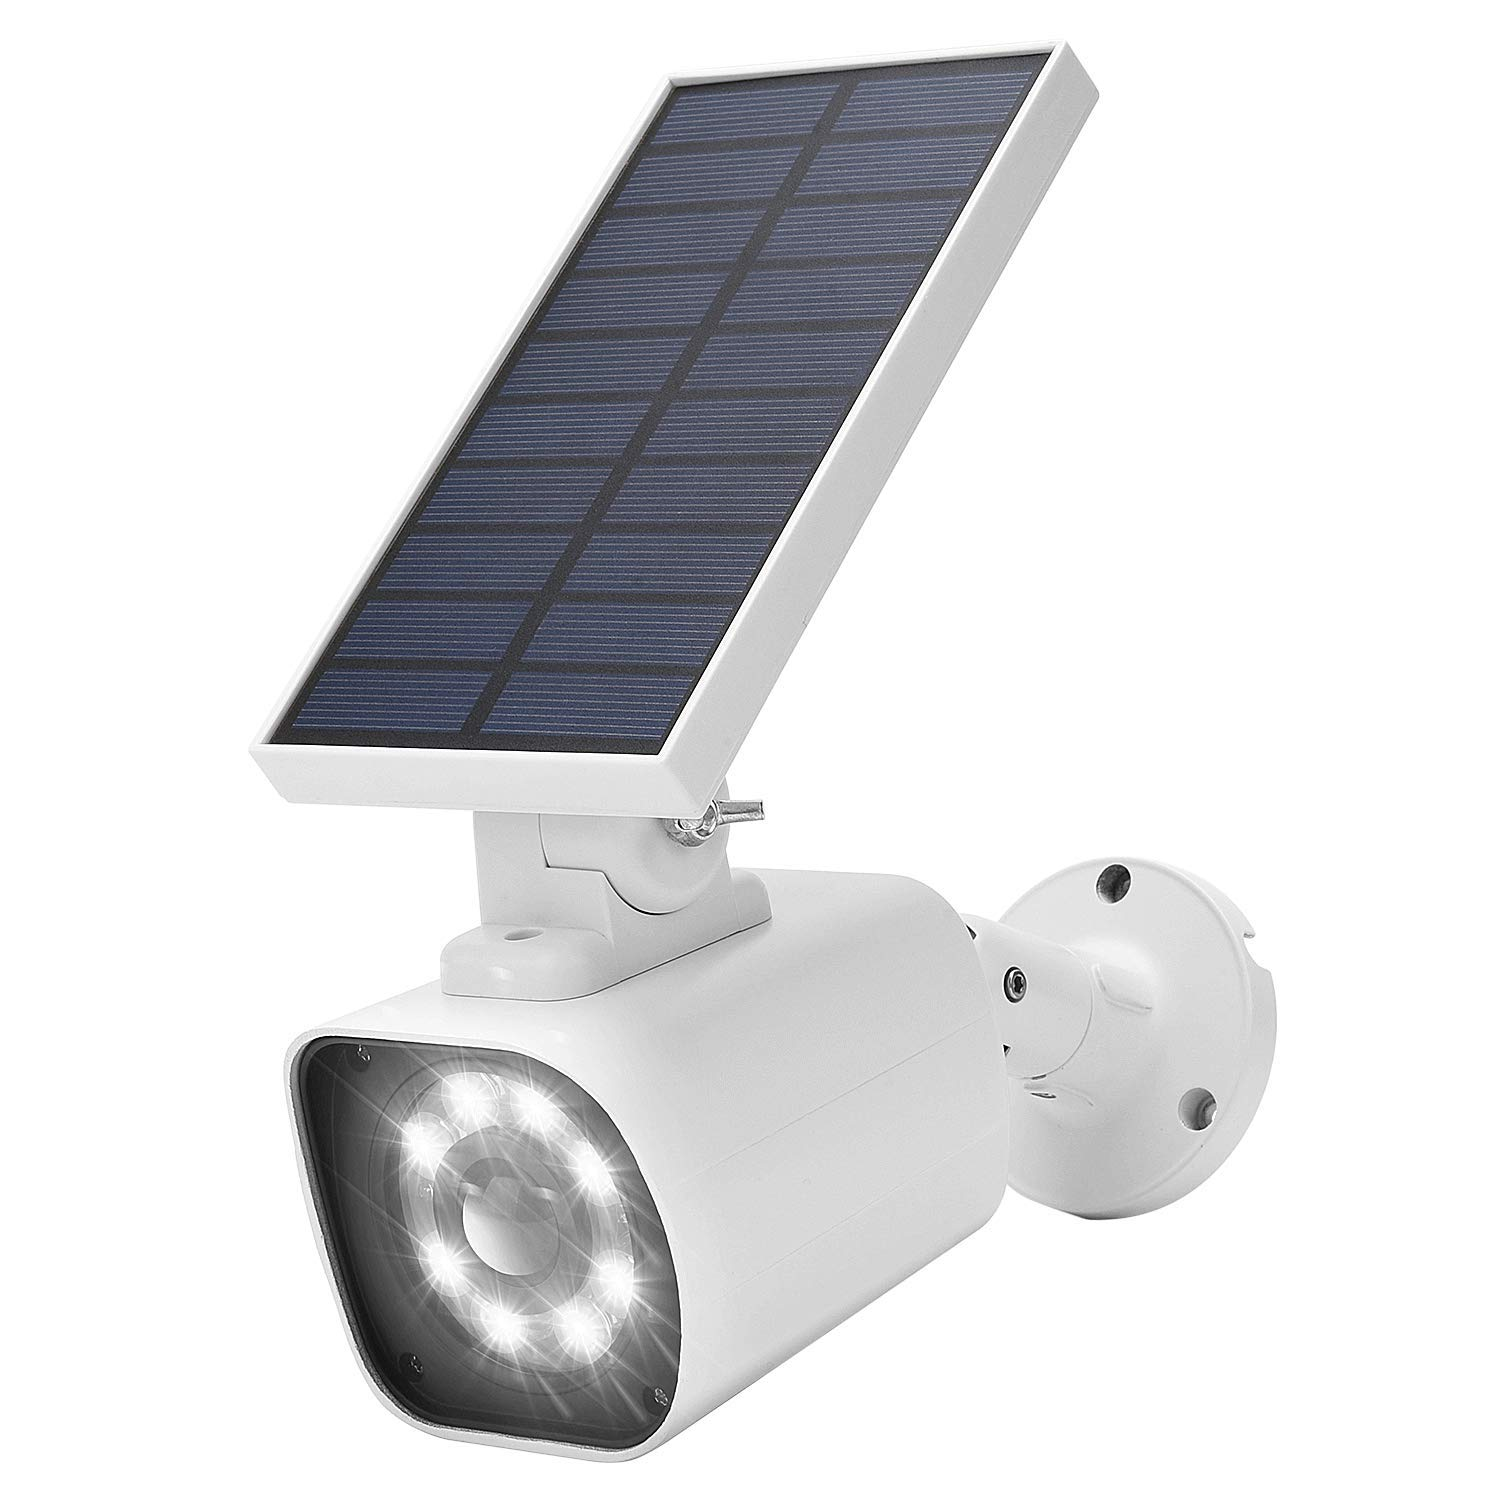 Solar Motion Sensor Light Outdoor JACKYLED 800 Lumen LED Solar Security Lights with Red Light Mode IP66 Waterproof Dim to Bright Outdoor Flood Lights for Porch Garden Patio Driveway Pathway Pack of 1